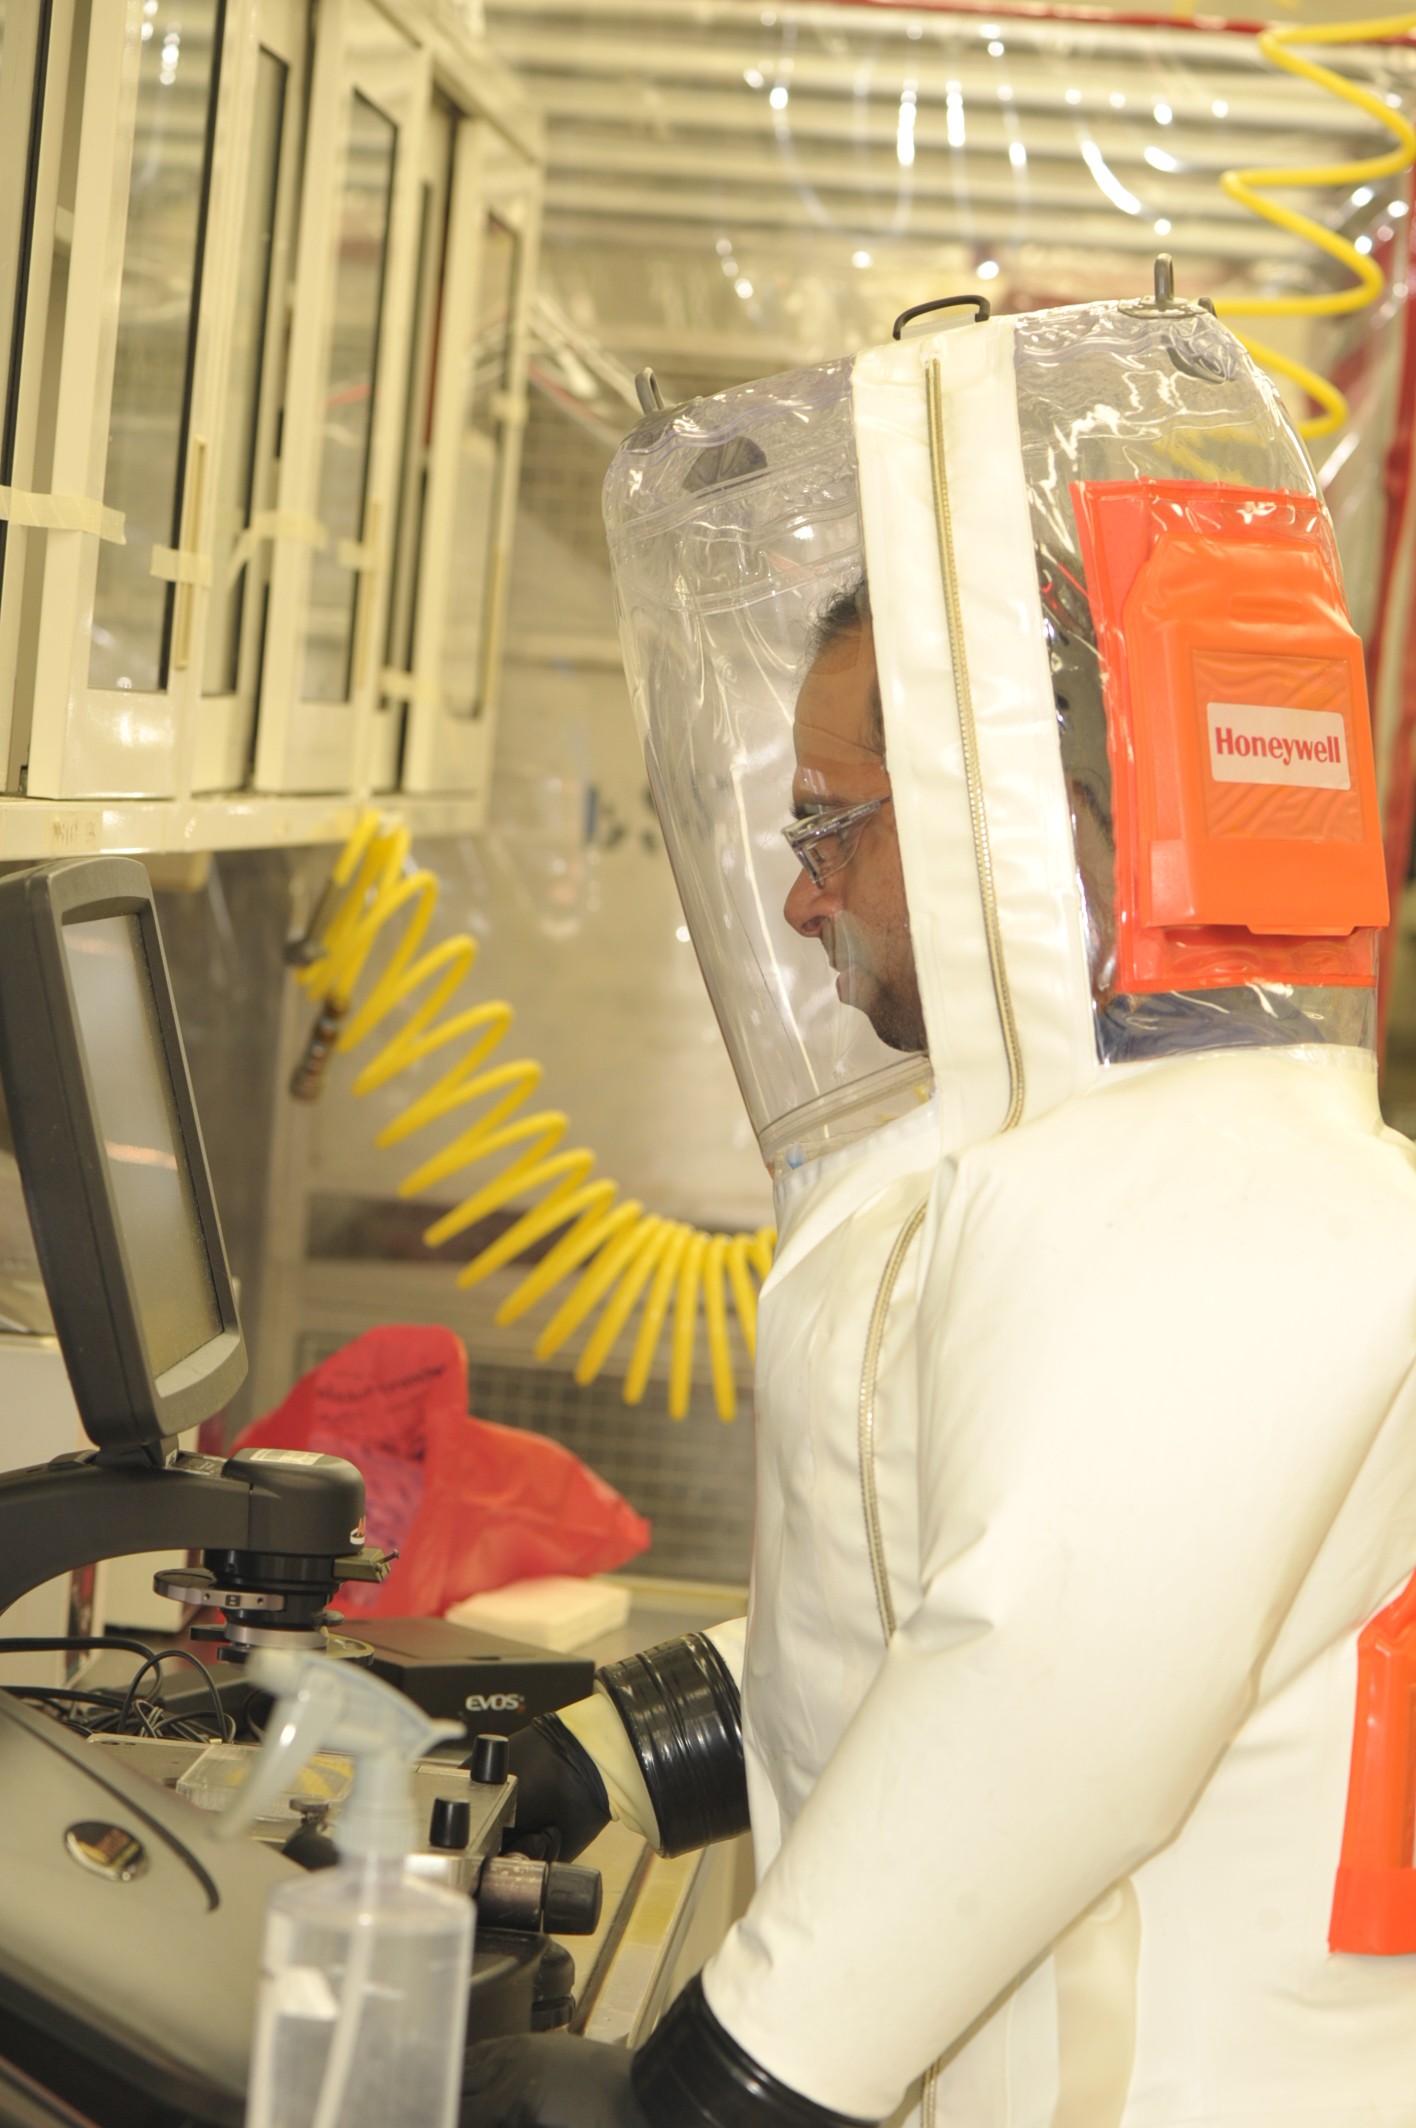 A scientist works on an experiment while wearing a protective suit inside the BSL-4 lab